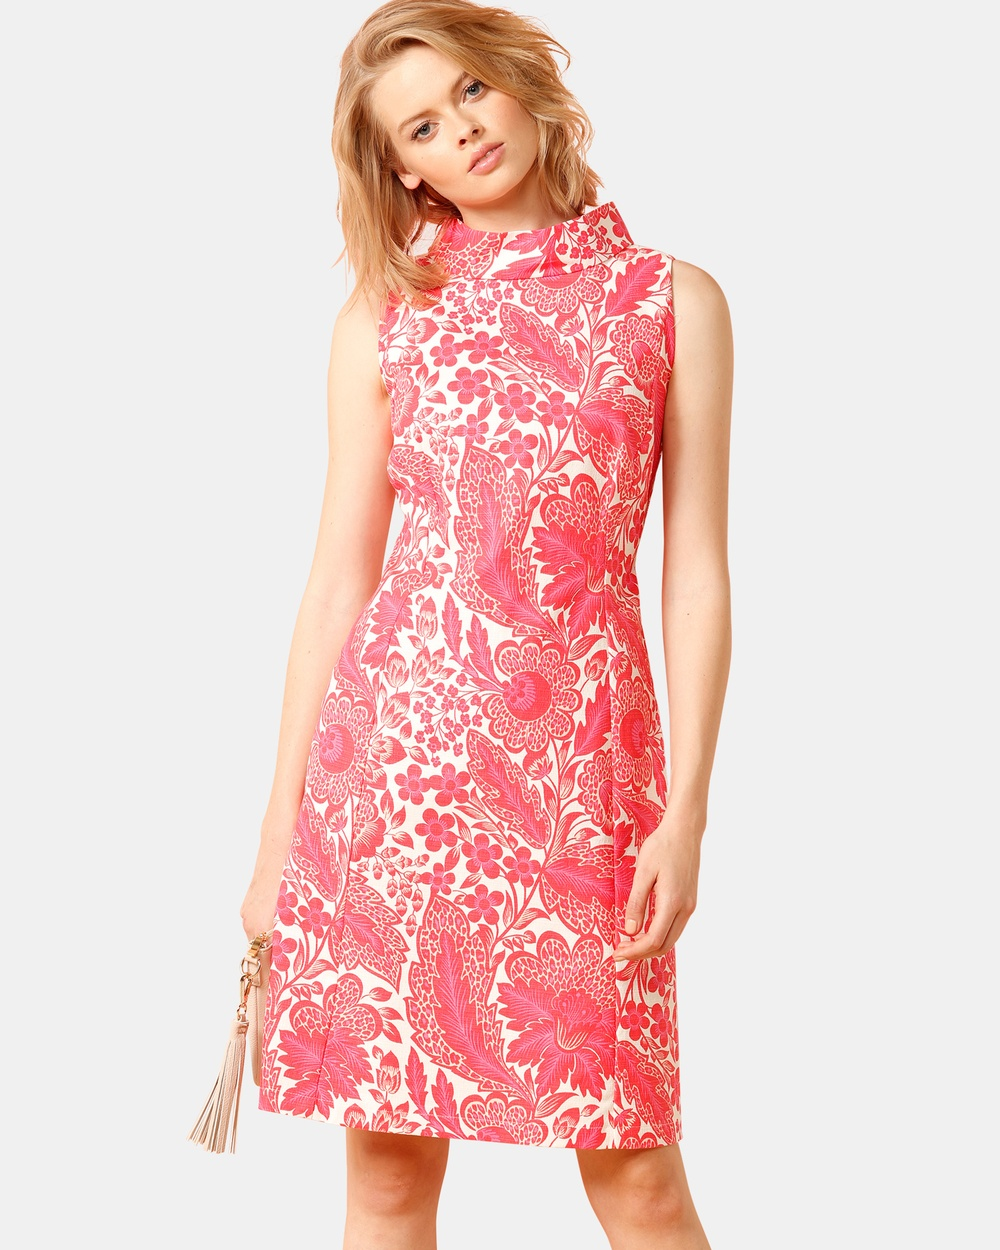 SACHA DRAKE Pink Ladies Pavillion Dress